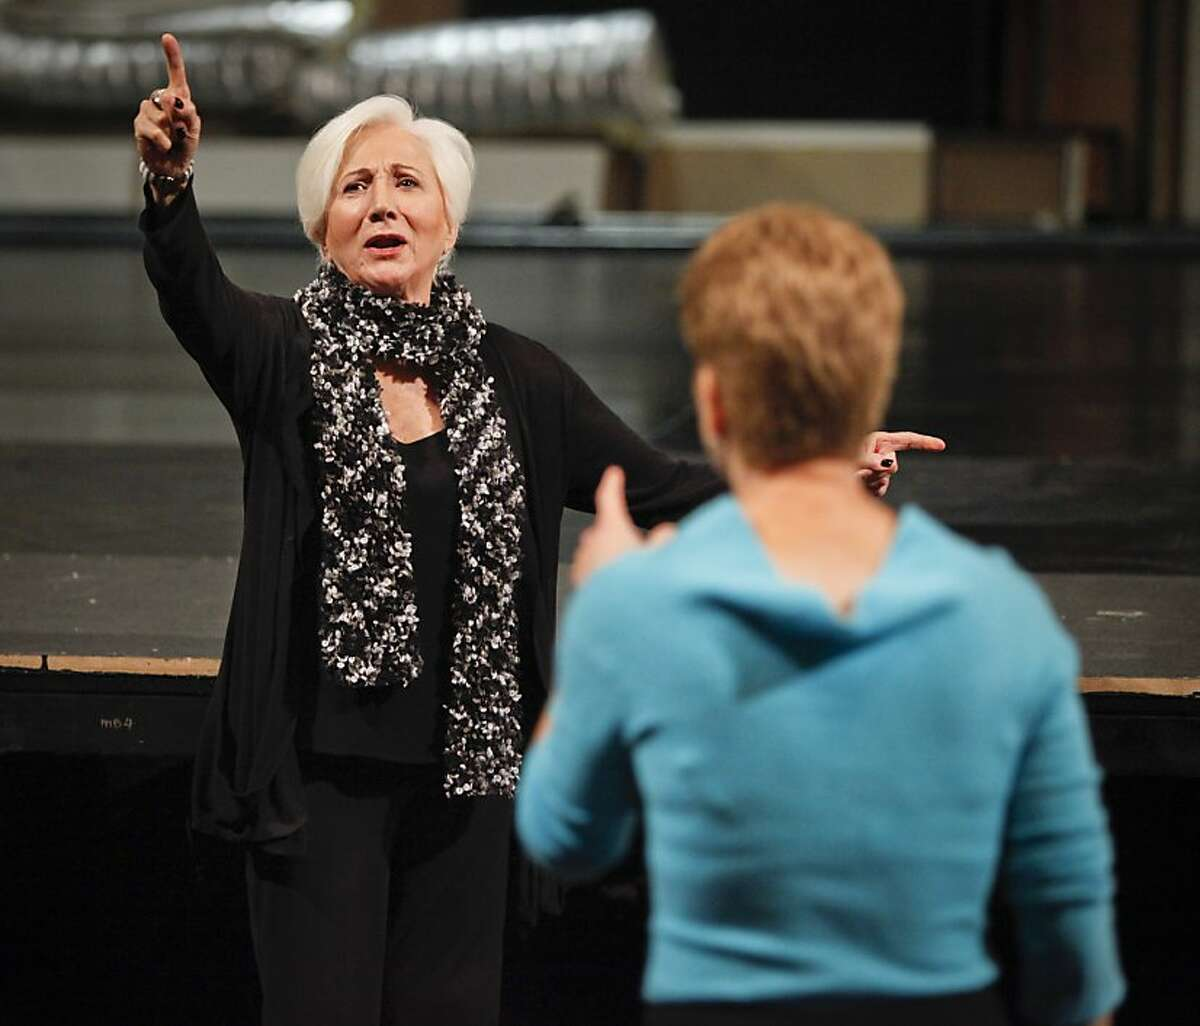 """Olympia Dukakis, star of the upcoming ACT production of, """"Elektra,"""" rehearses a scene with director Carey Perloff on Wednesday, Oct. 10, 2012 at the Geary Theater in San Francisco, Calif."""